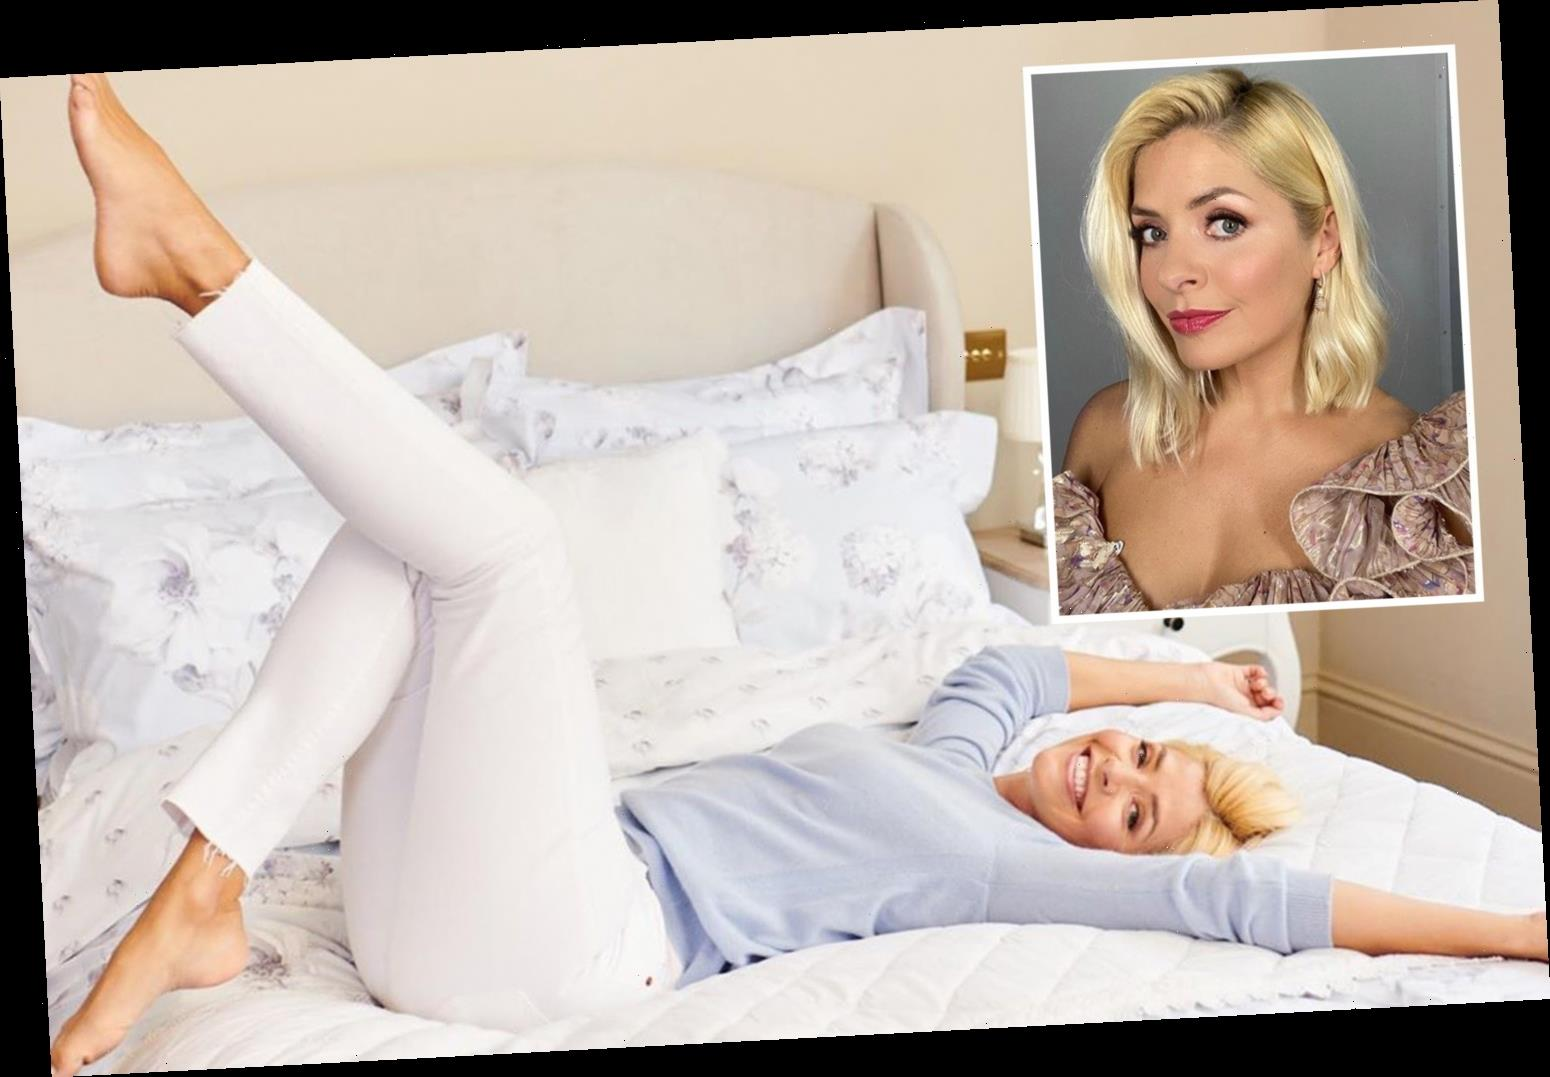 Holly Willoughby frolics around on a bed as fans call her a 'dream woman' – The Sun